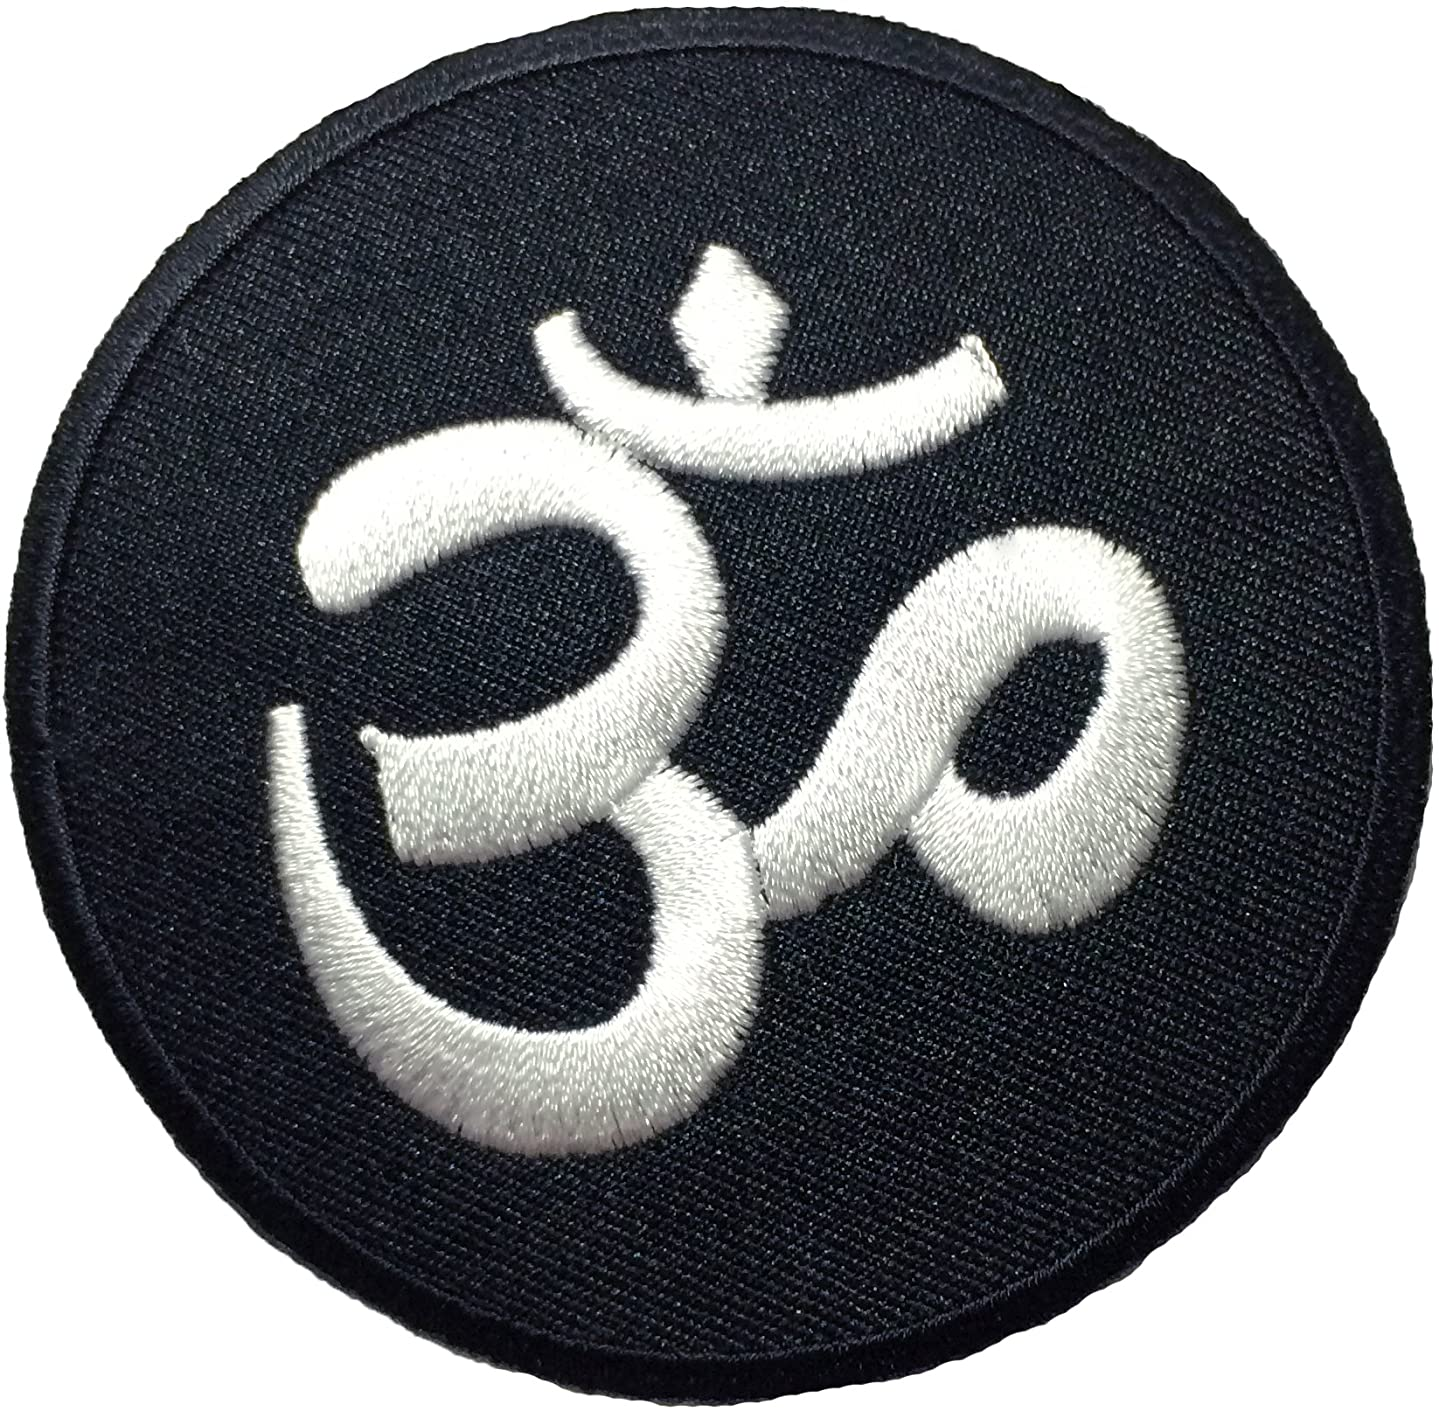 Papapatch Aum Om Ohm Hindu Hindi Hinduism Yoga DIY Costume Design Symbol Embroidered Sew on Iron on Patch (IRON-OM-BLACK)